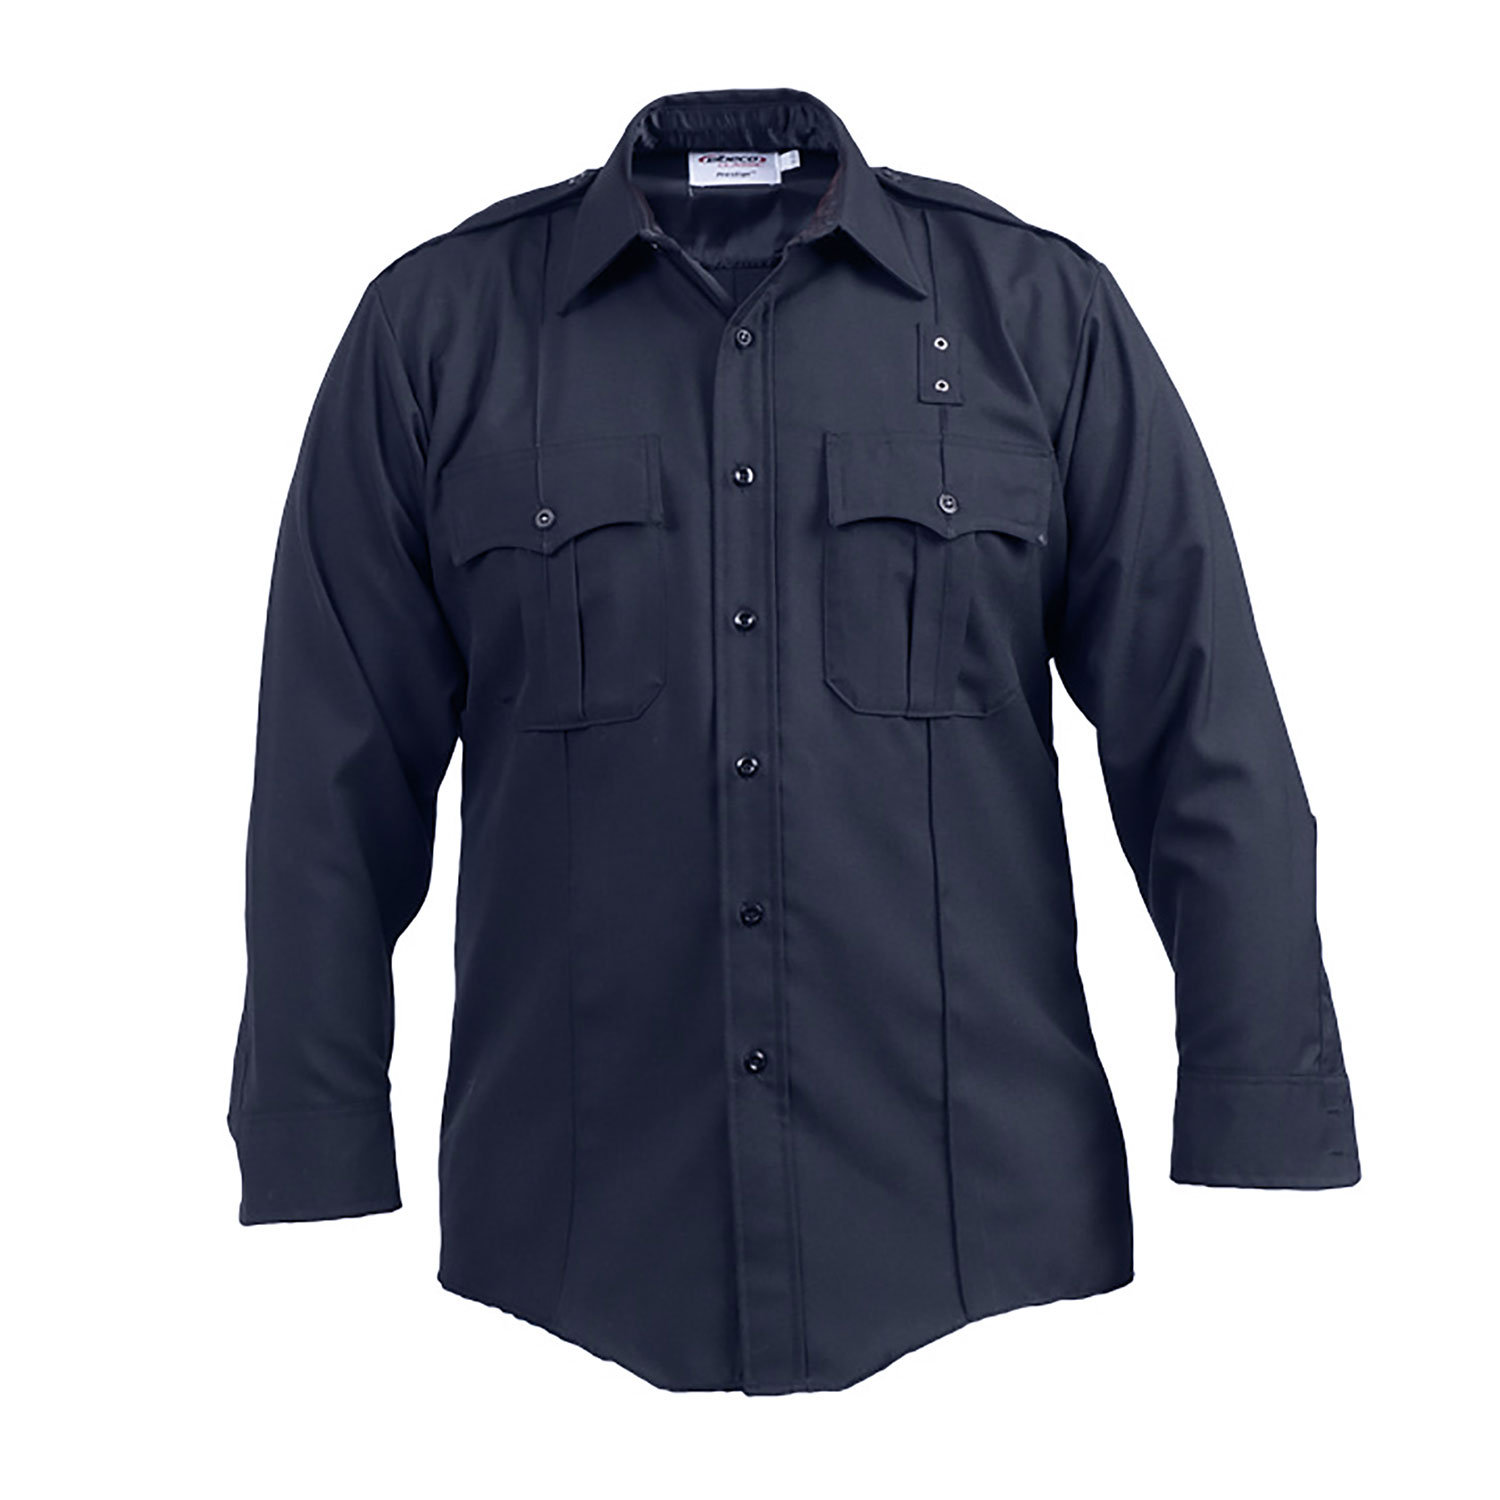 Elbeco Zippered Prestige Long Sleeve Shirt